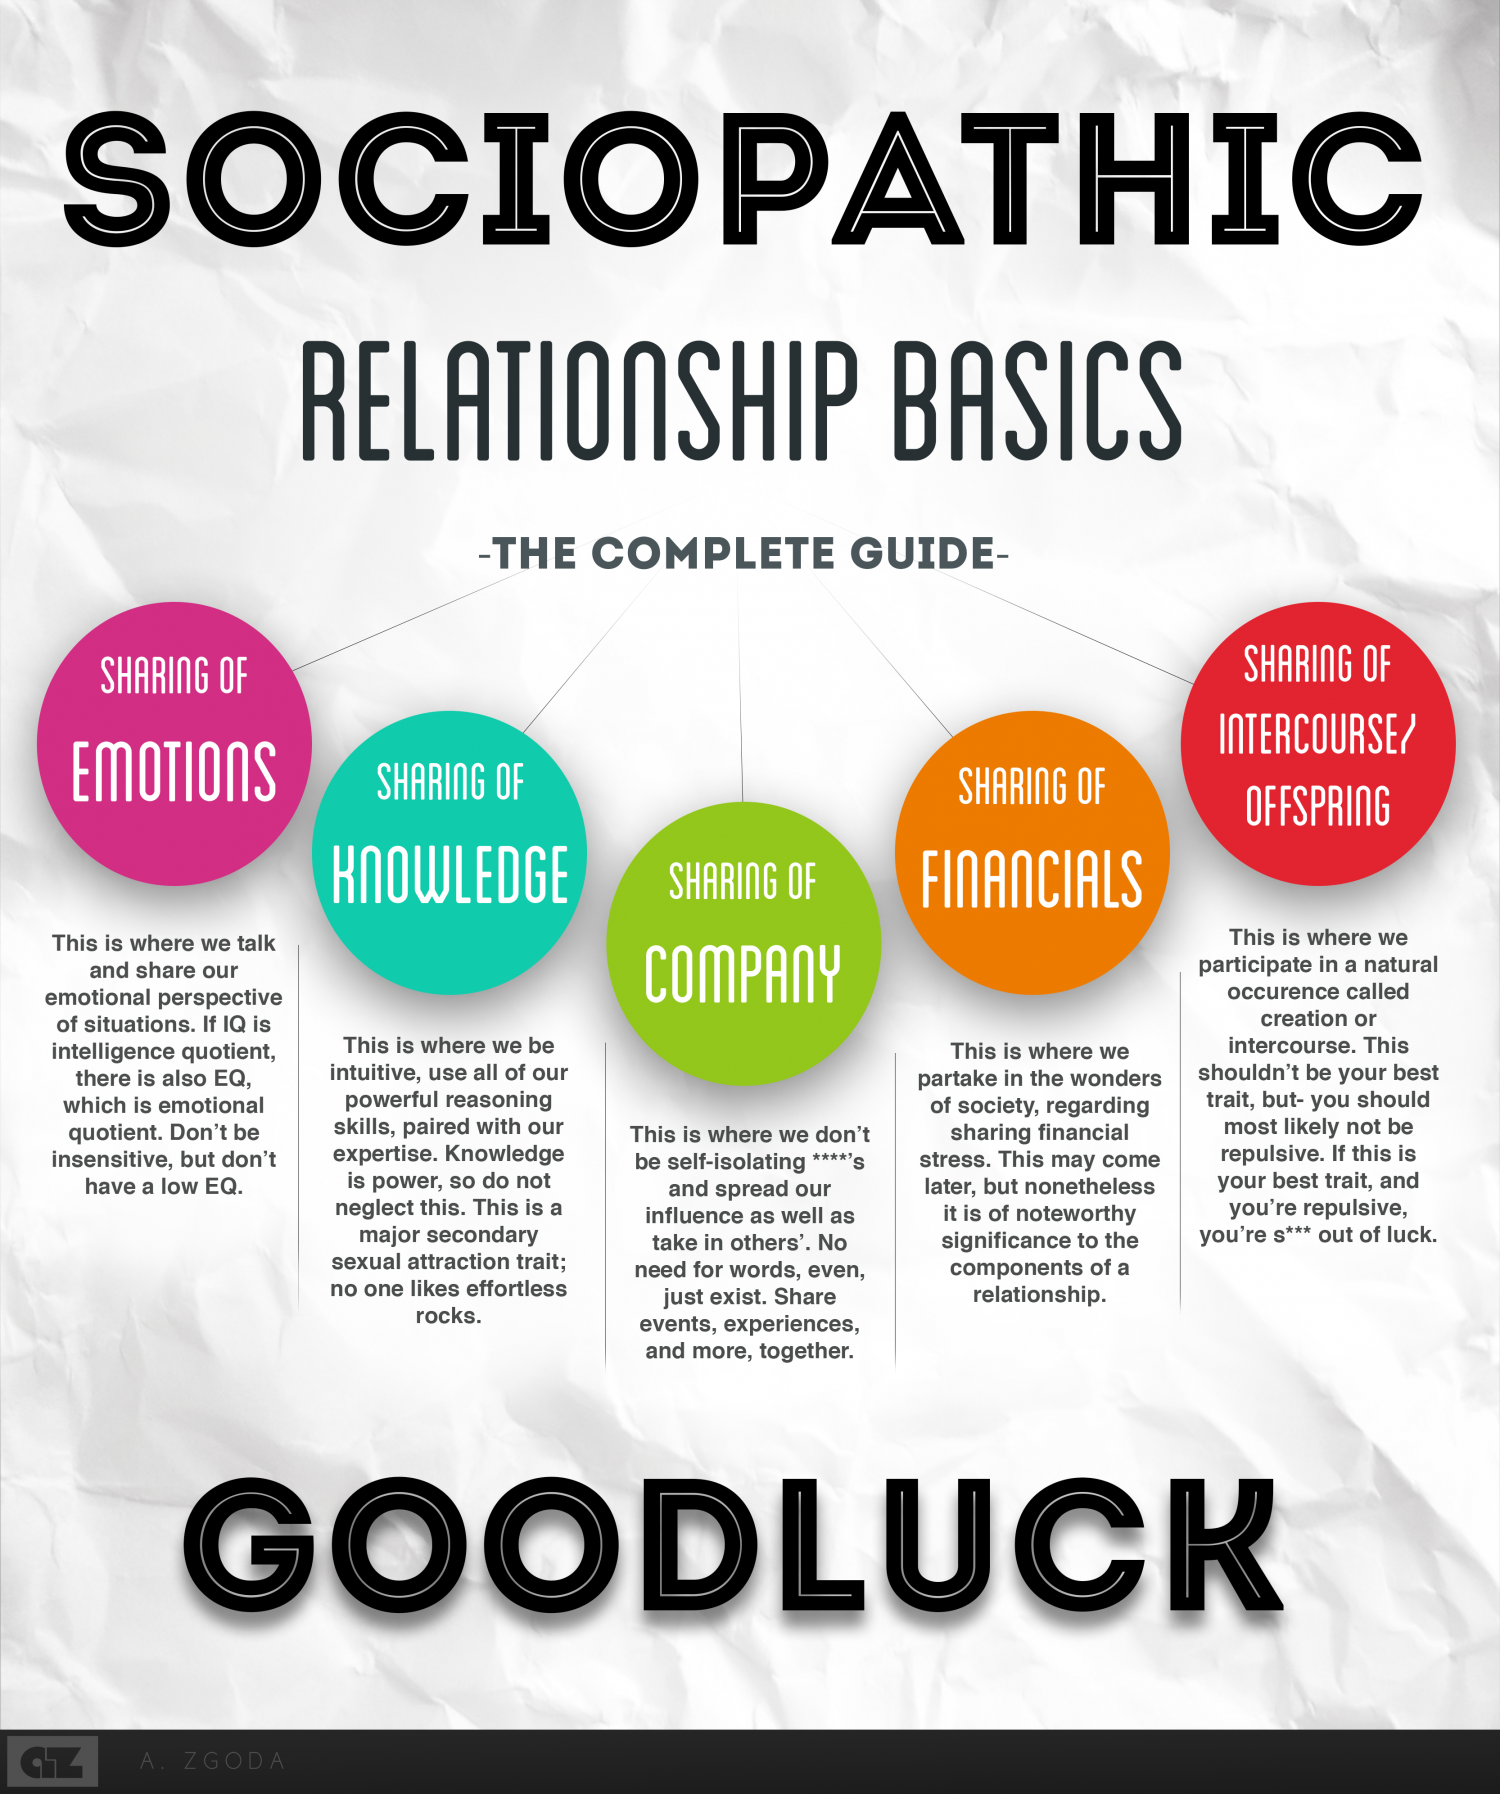 Sociopathic Relationship Basics | The Complete Guide Infographic